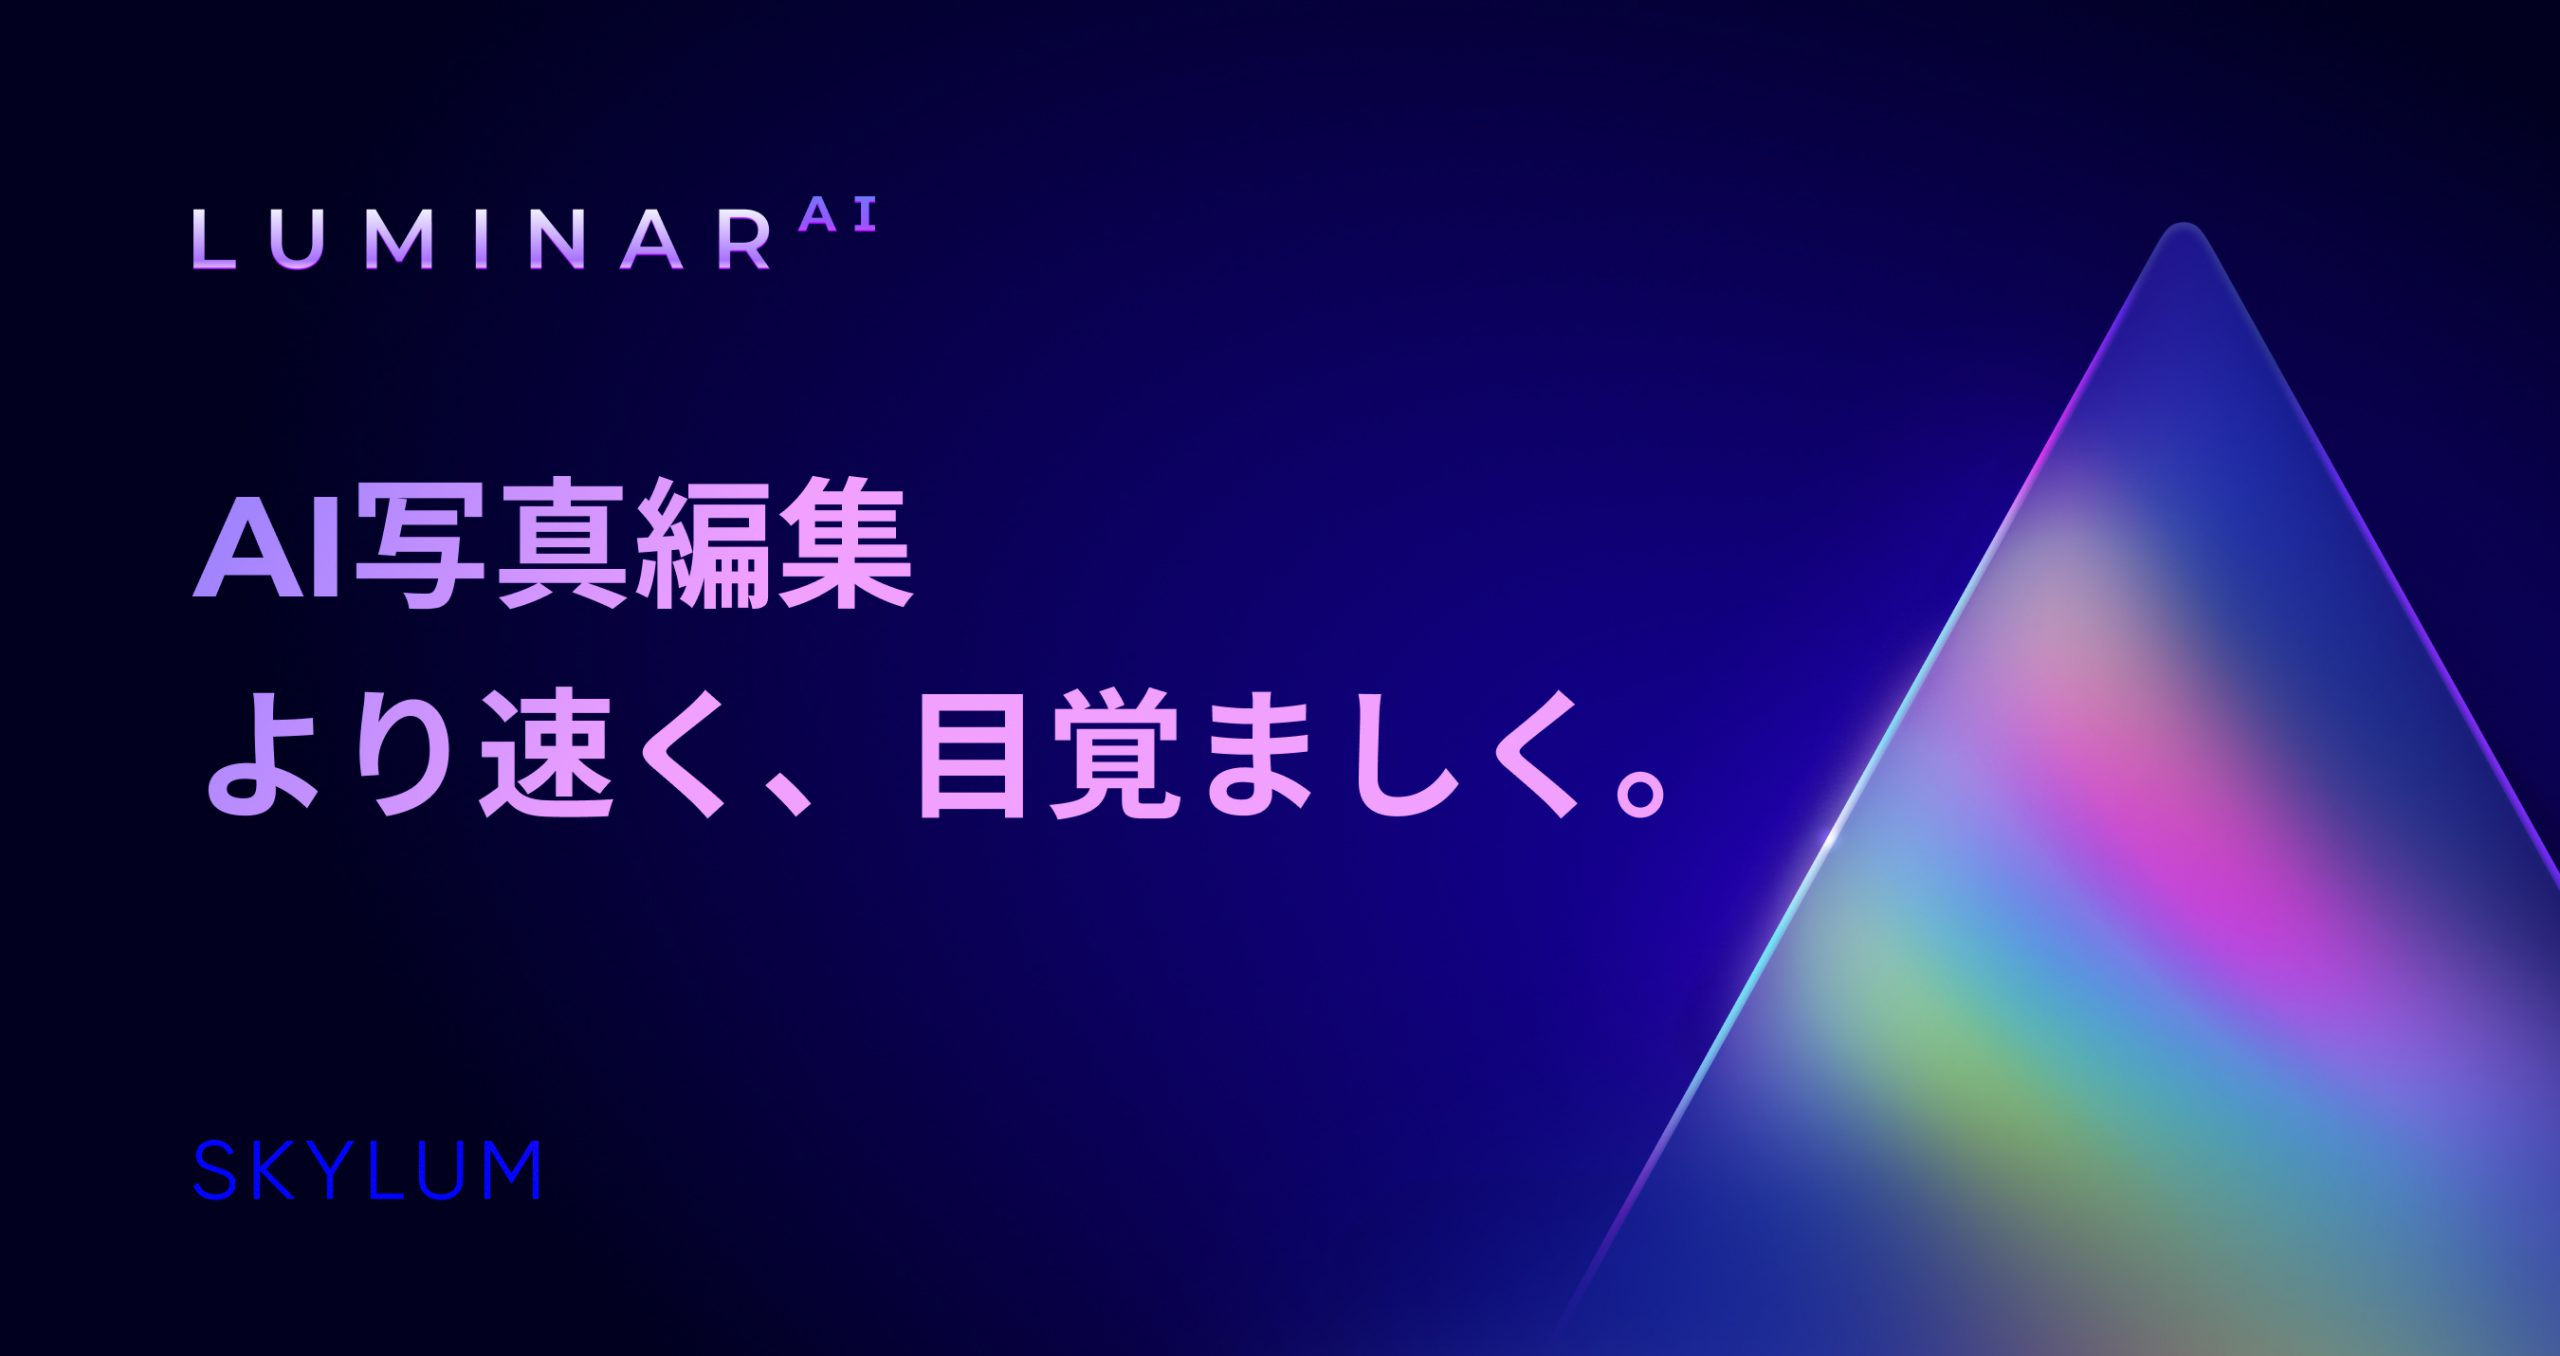 Luminar AI launch banner 2 2 scaled - LuminarAI 最新情報まとめ